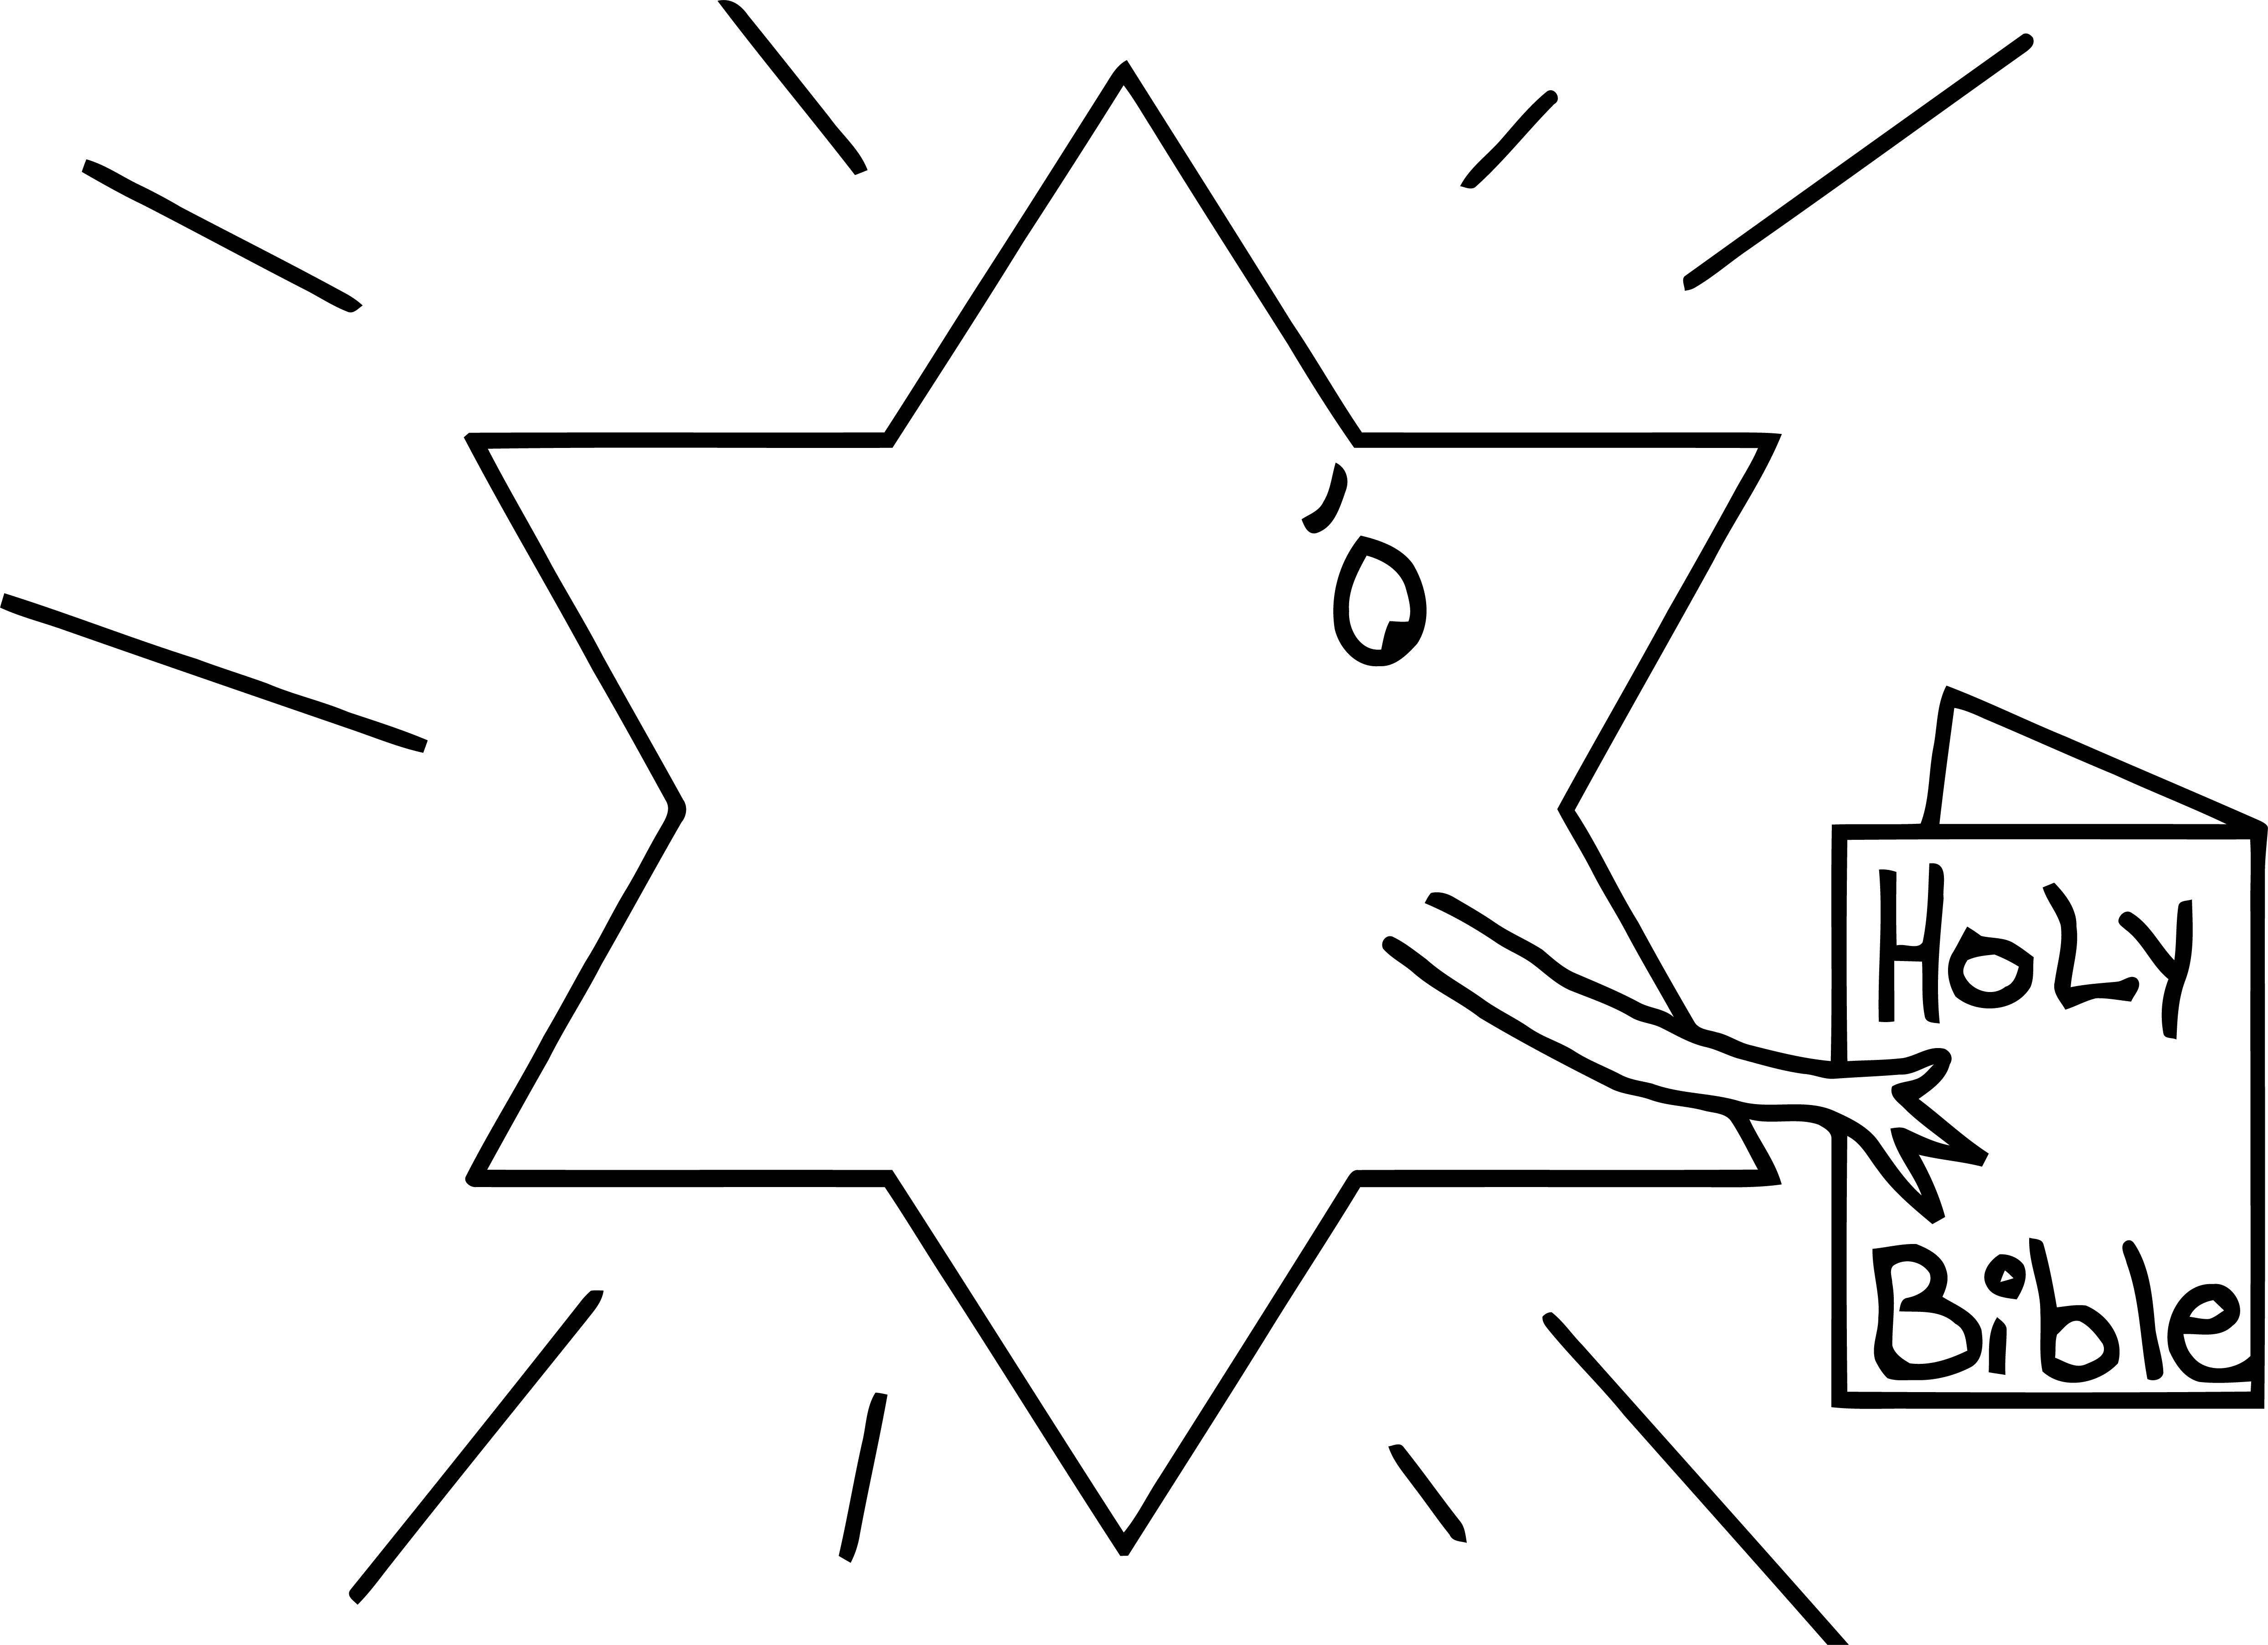 Painter Star Holy Bible Coloring Page